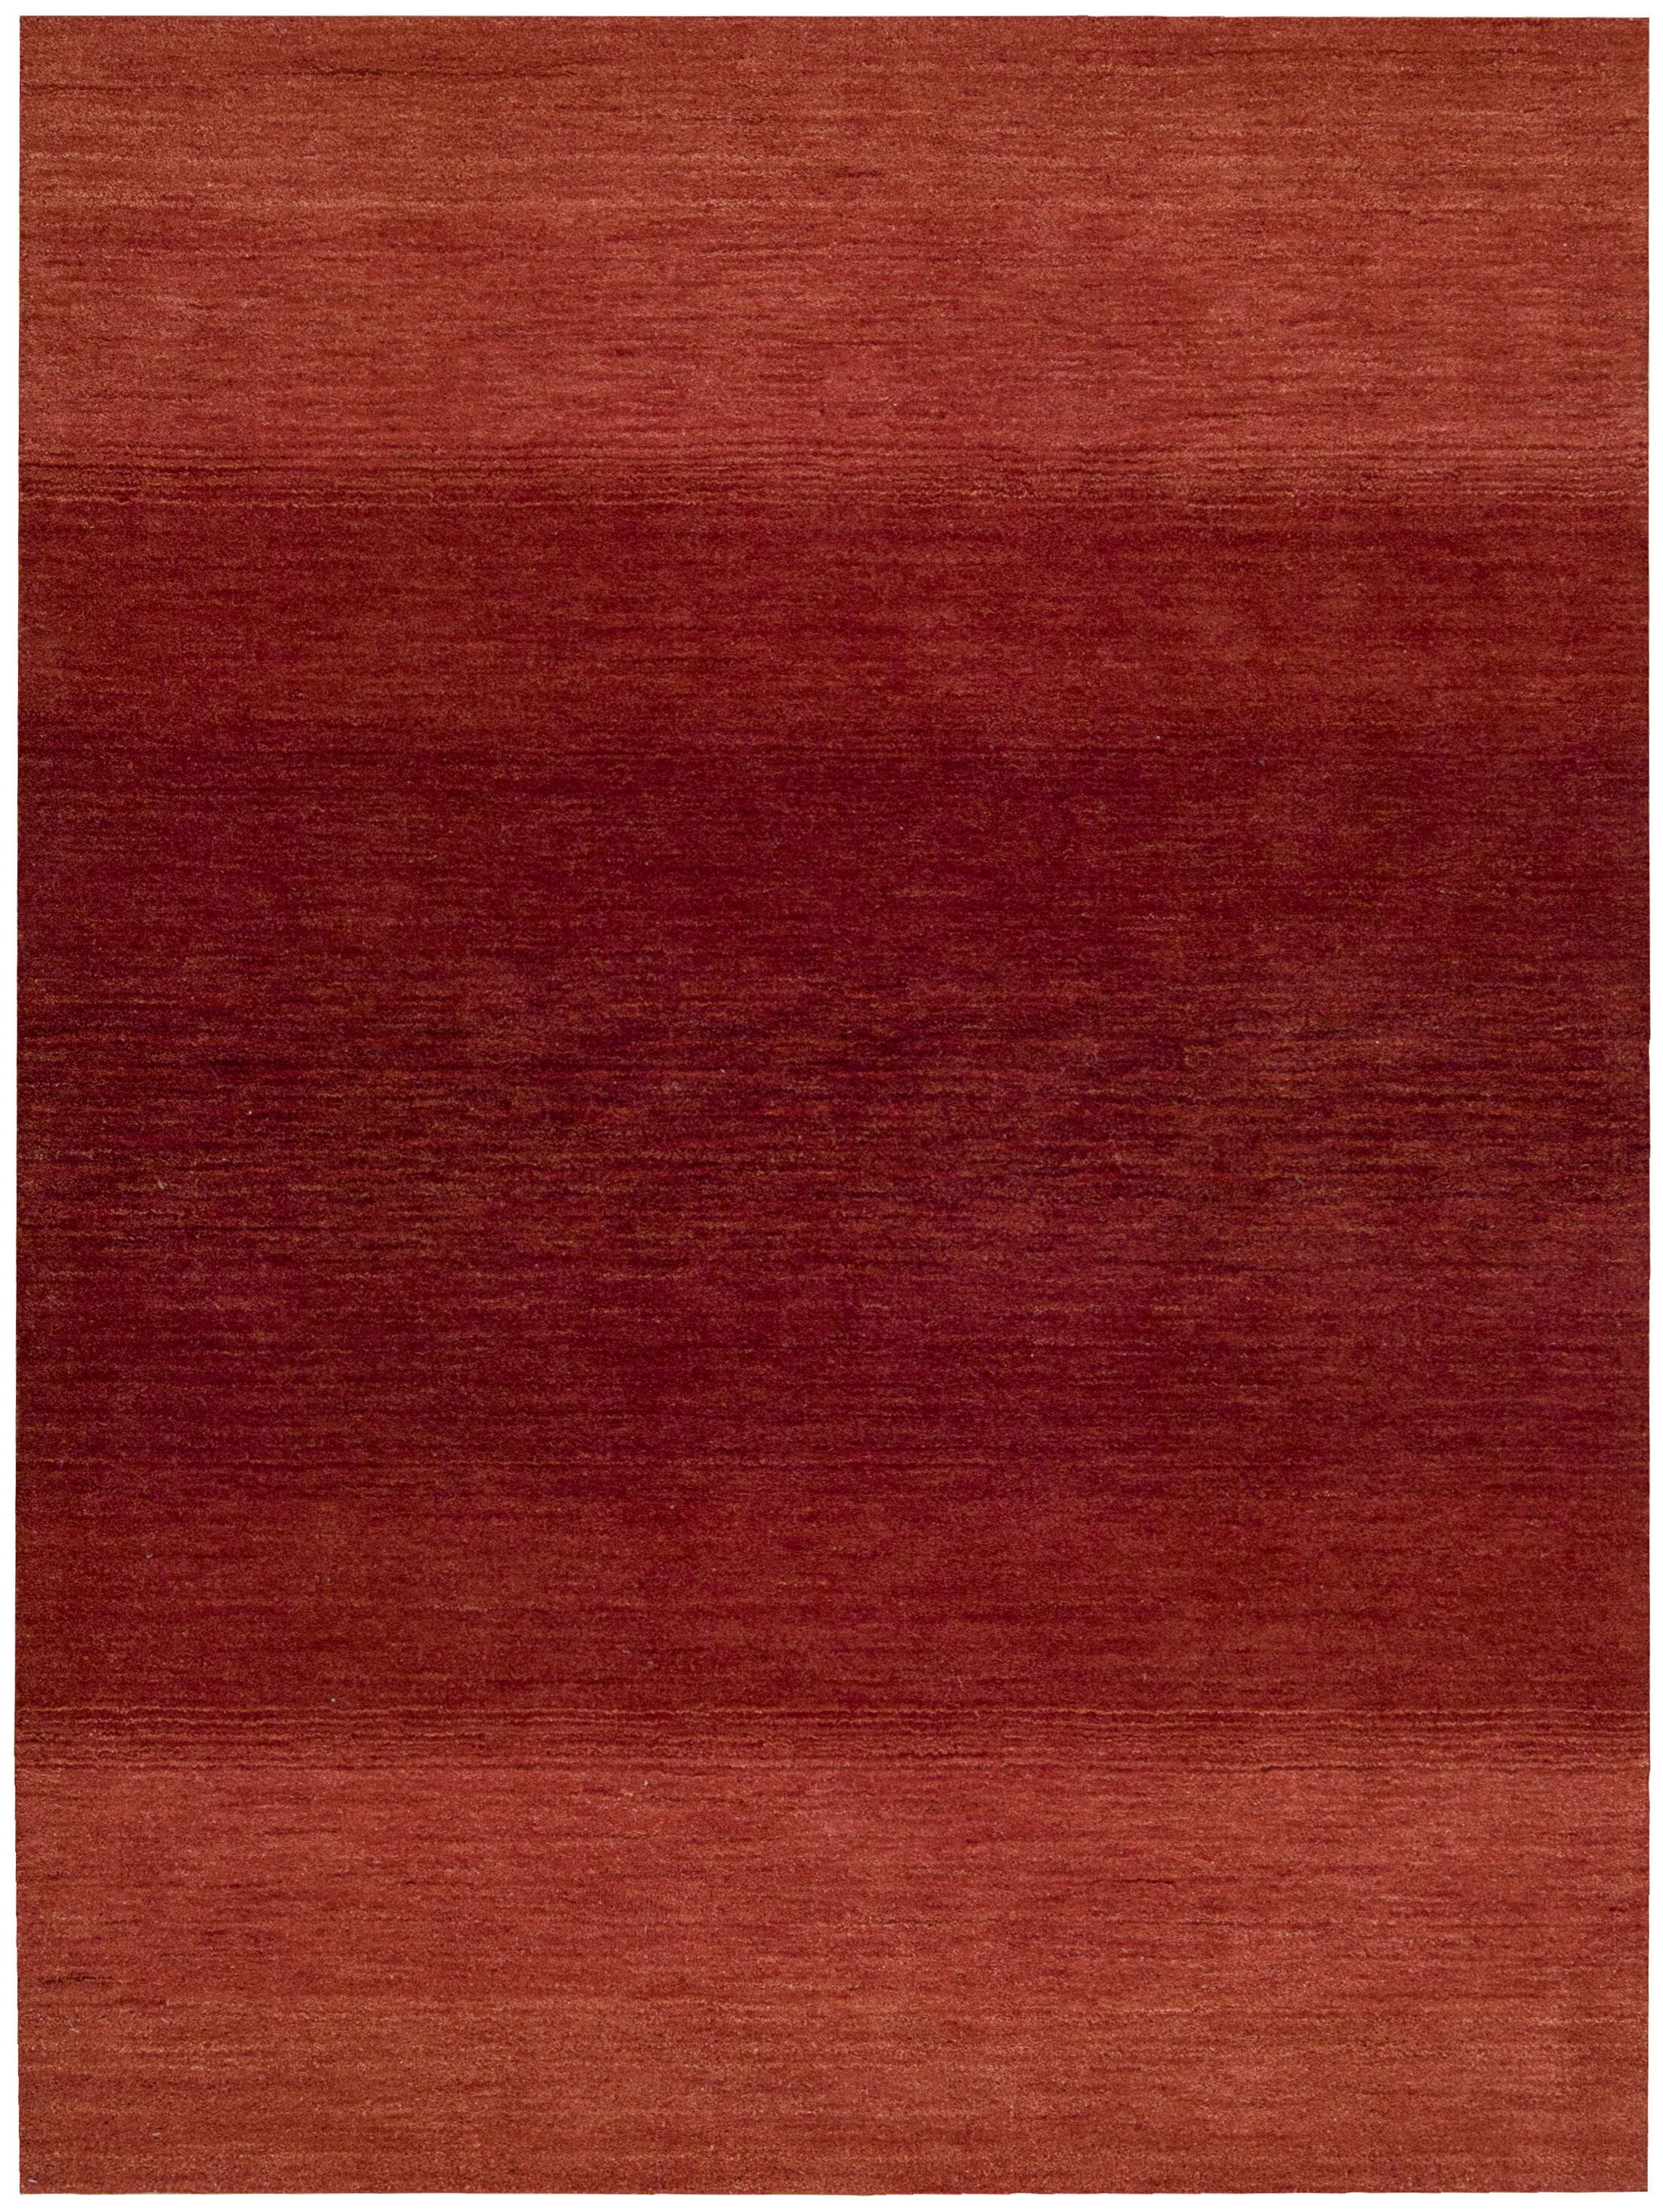 Linear Glow Hand-Woven Watercolor Sumac Area Rug Rug Size: Rectangle 5'3